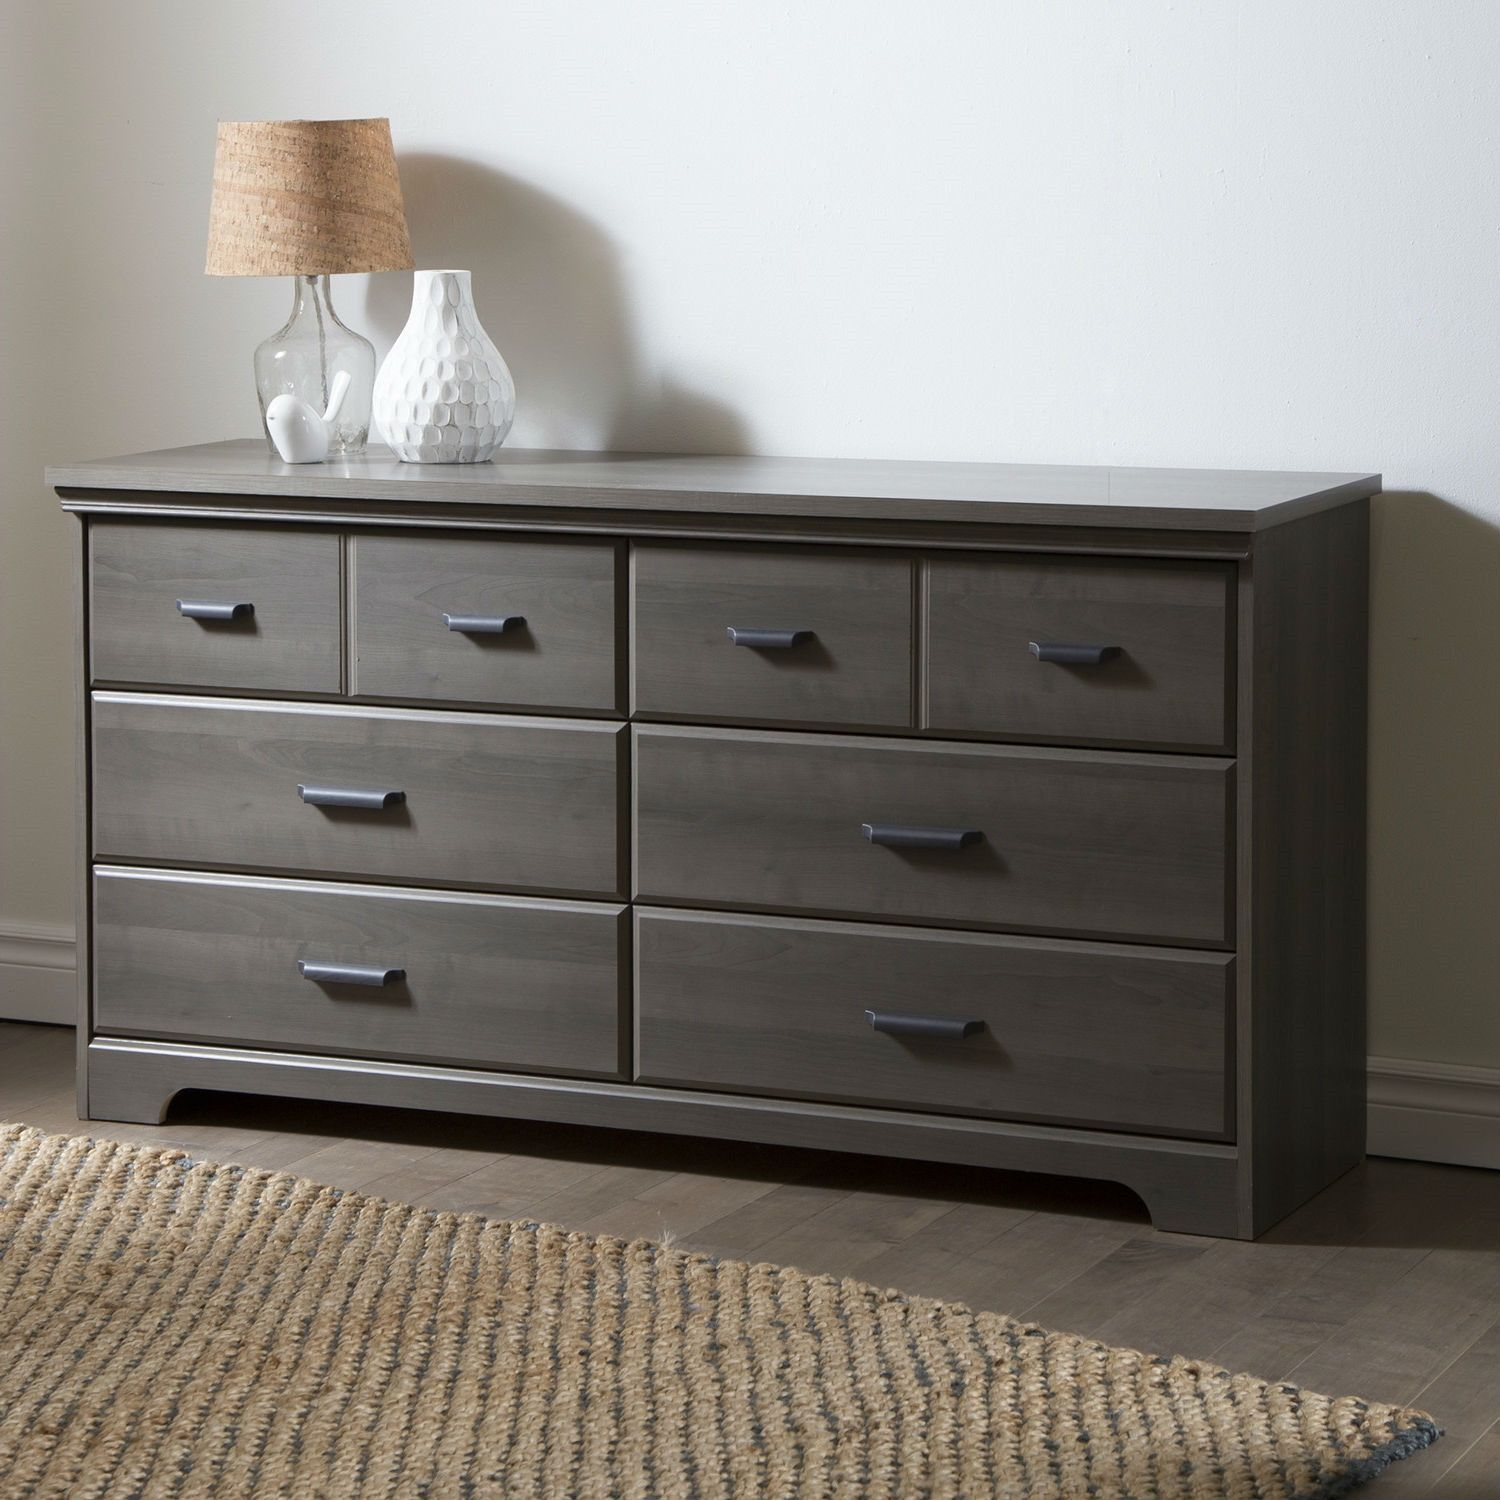 Gray maple wood finish 6 drawer bedroom dresser with matte black handles